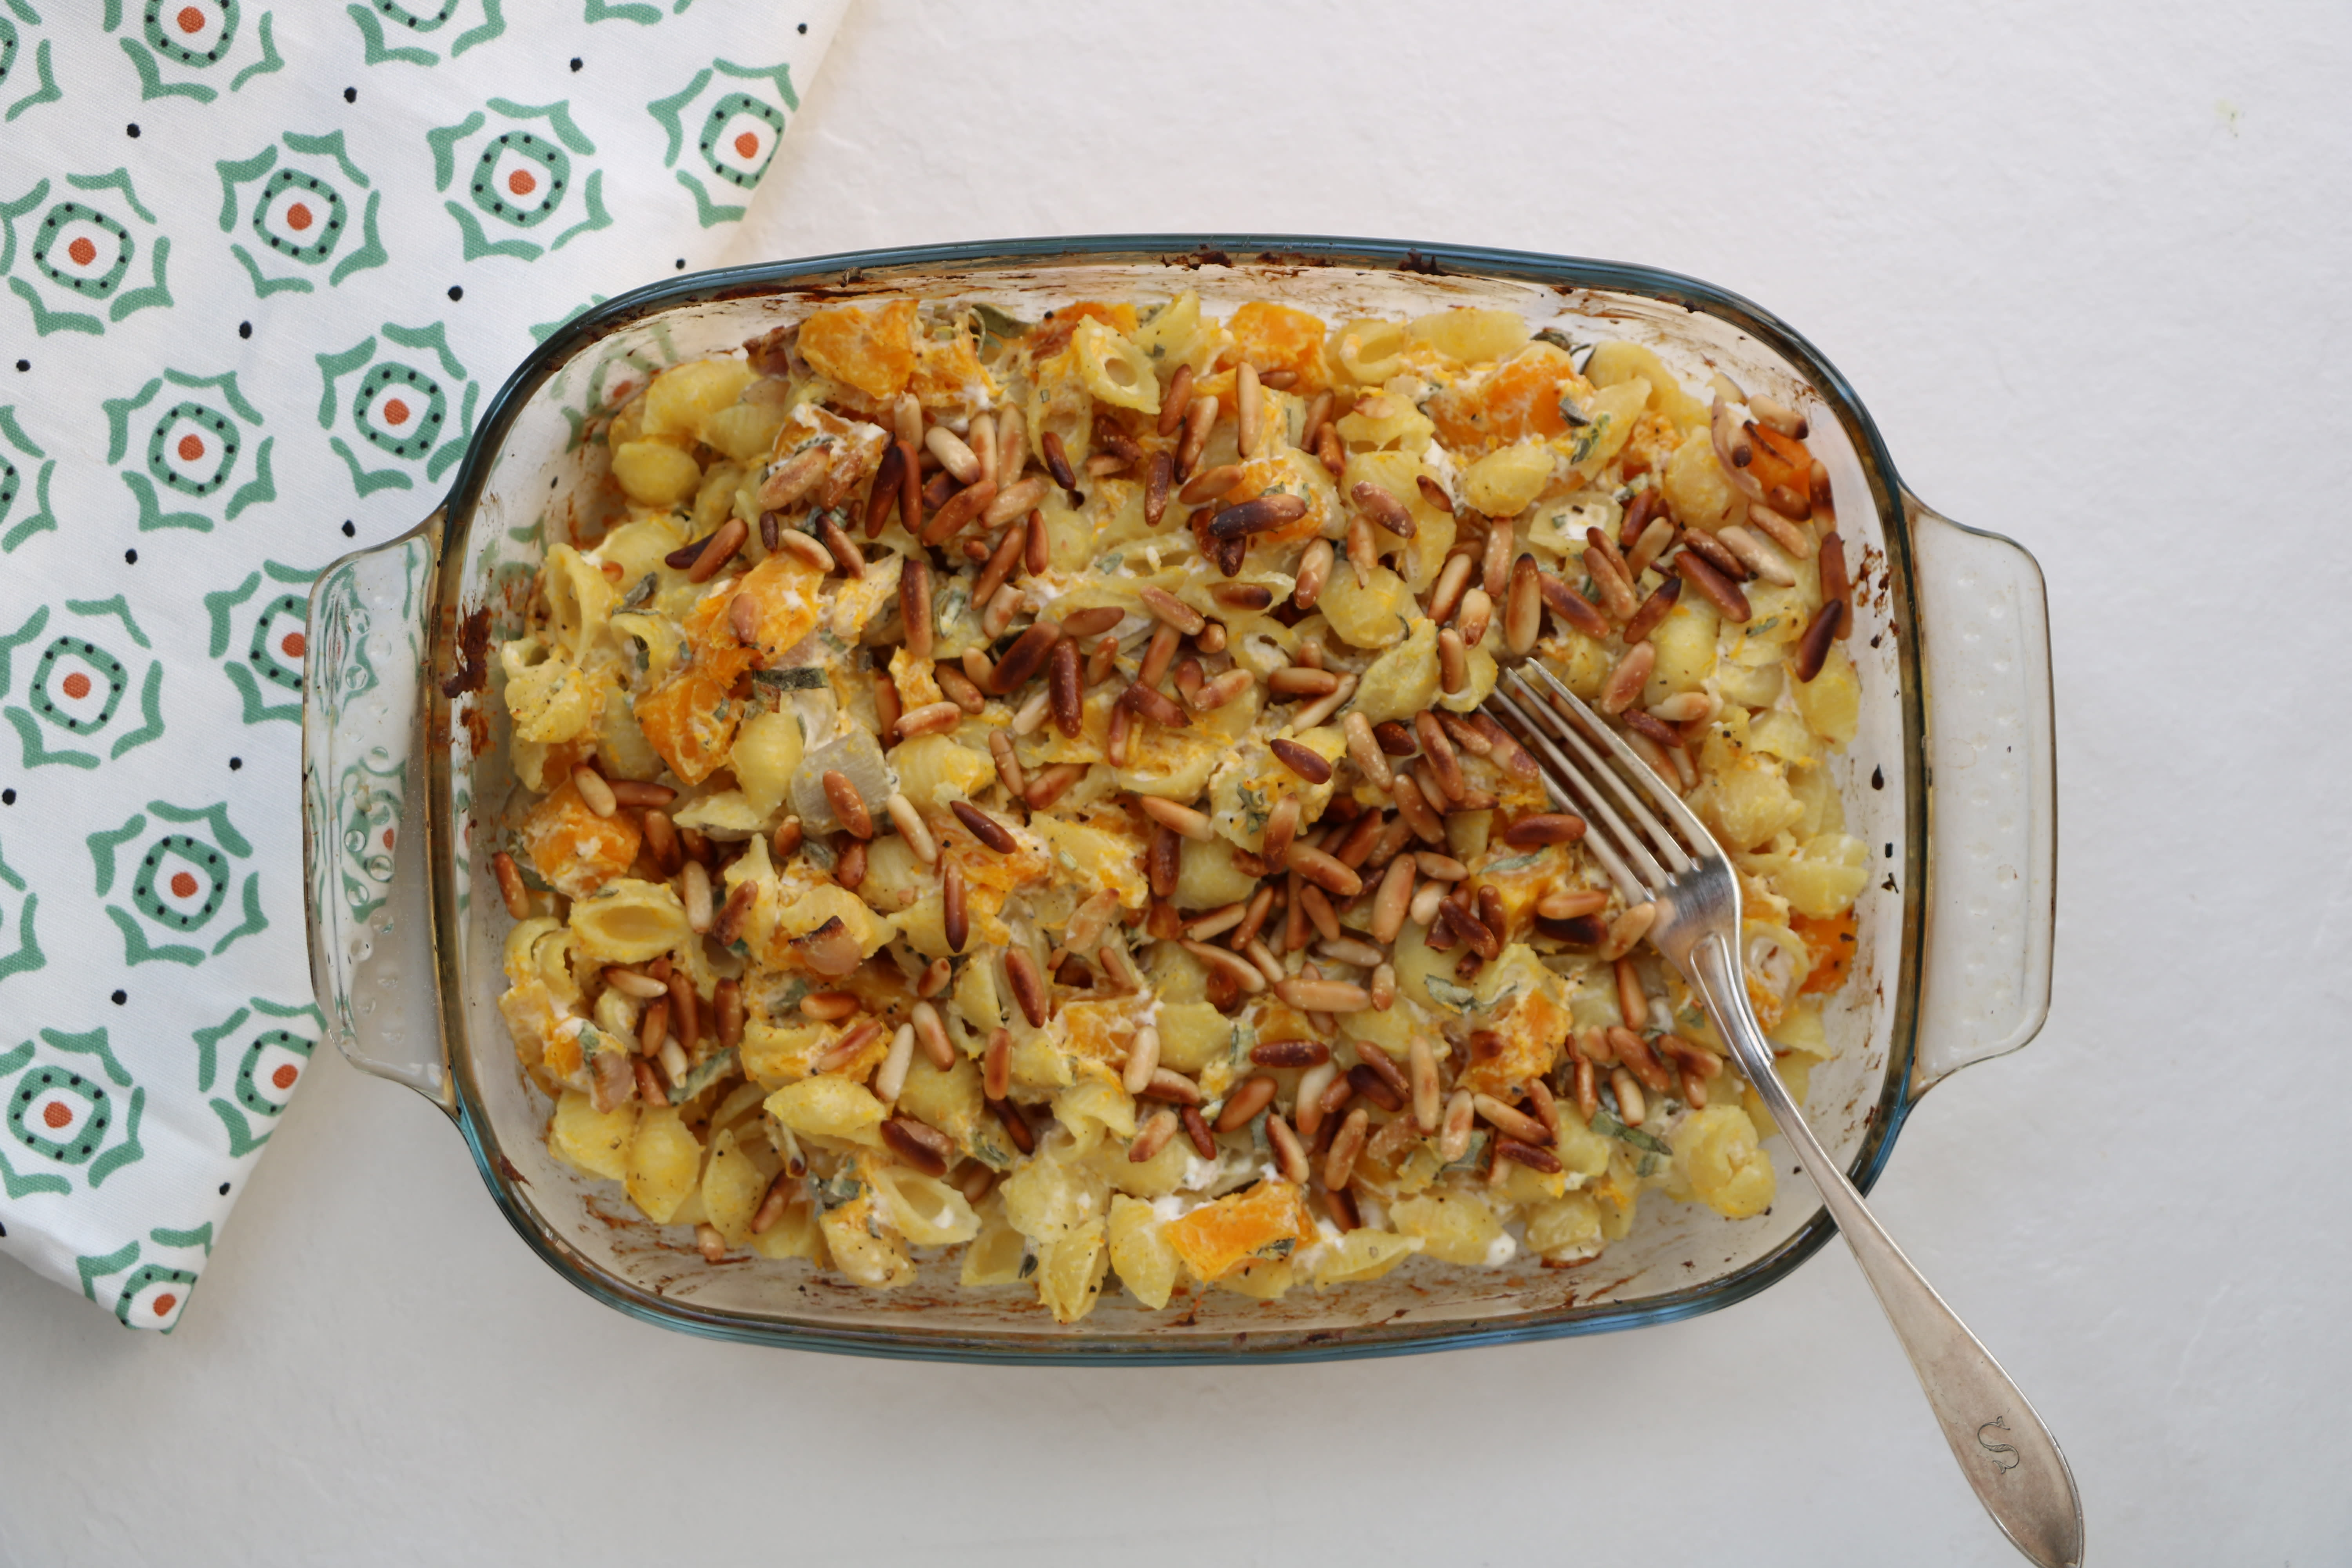 Baked Conchiglie Pasta with Roasted Pumpkin, Sage and Pine Nuts